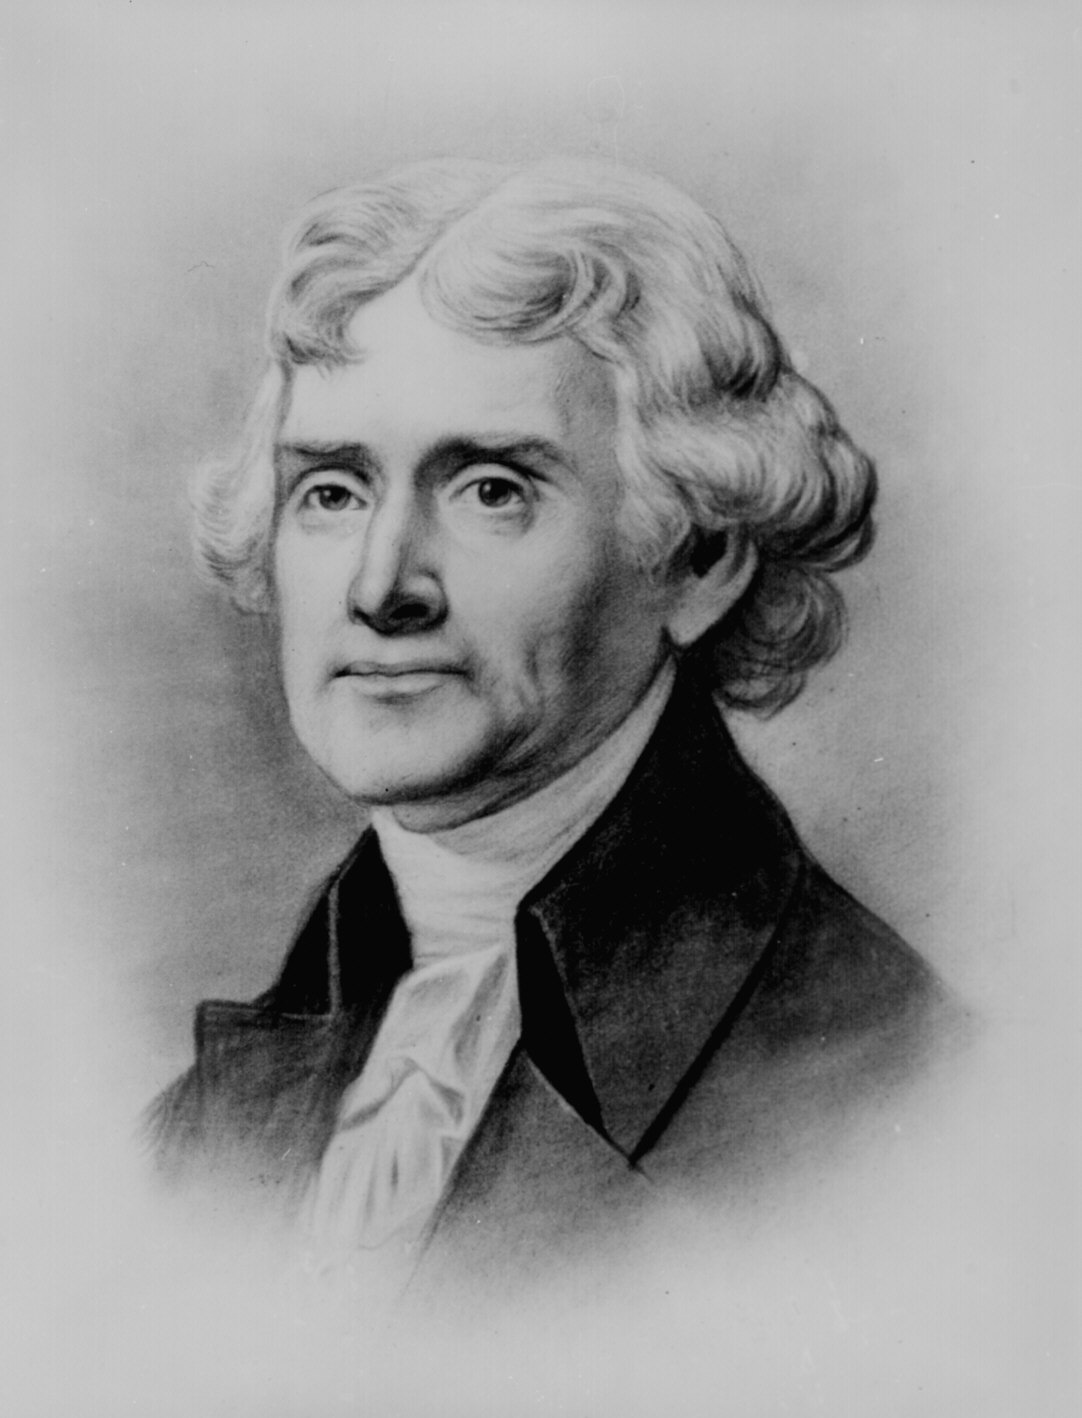 """thomas jefferson and slavery in virginia Slavery in notes on the state of virginia: understanding complexity christopher martin eng 404 dr gilmore may, 2013 the origins of thomas jefferson""""s notes on the state of virginia come not from jefferson, but rather from the french."""